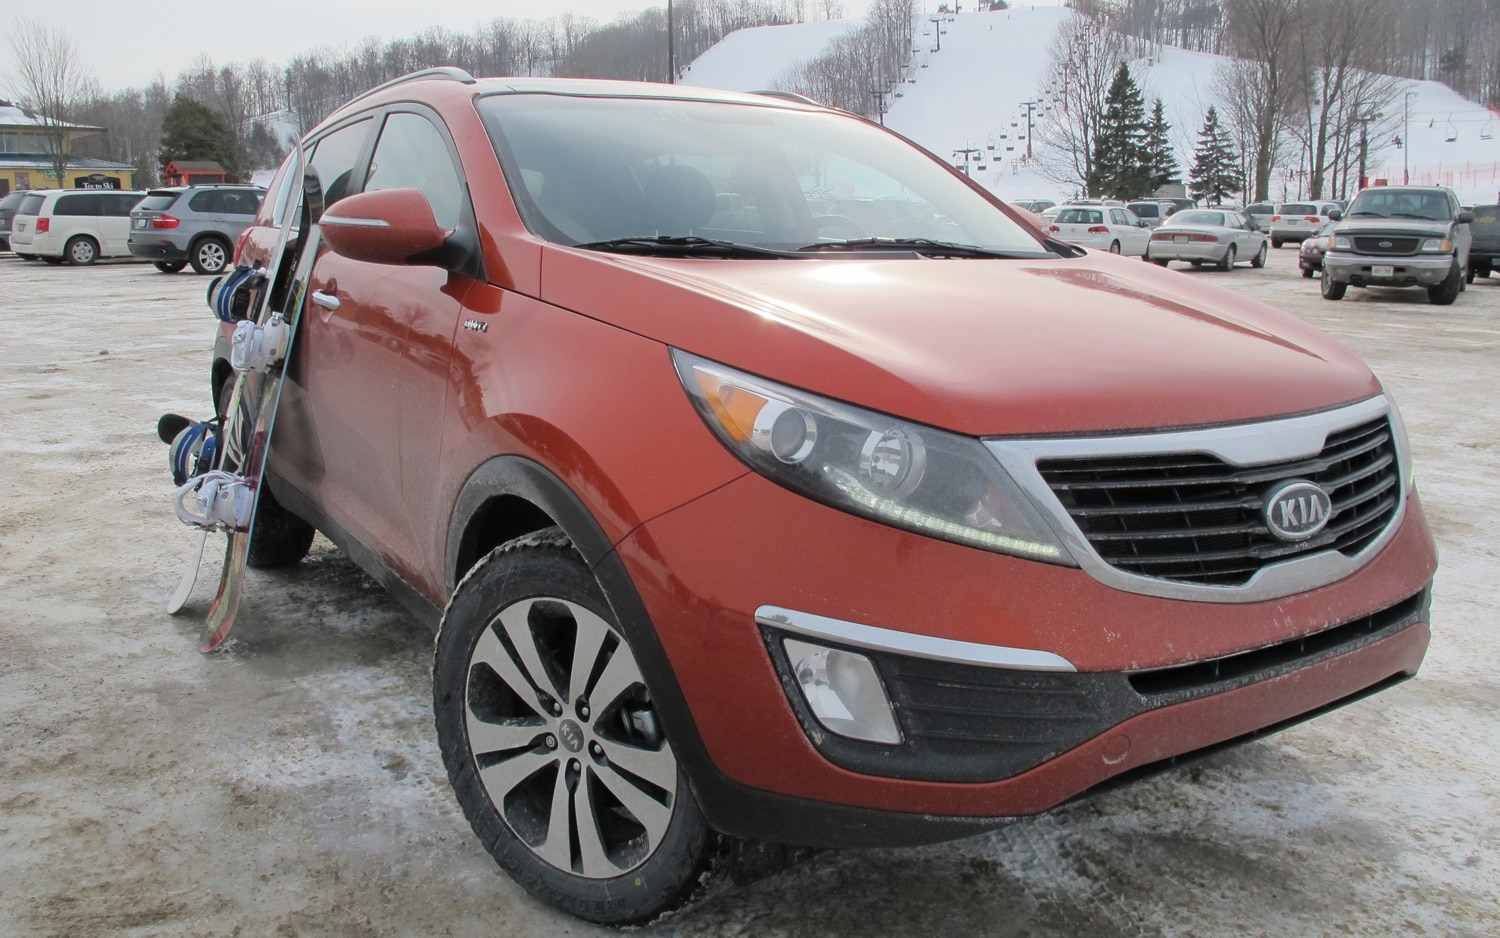 2011 Kia Sportage EX Front Right View1